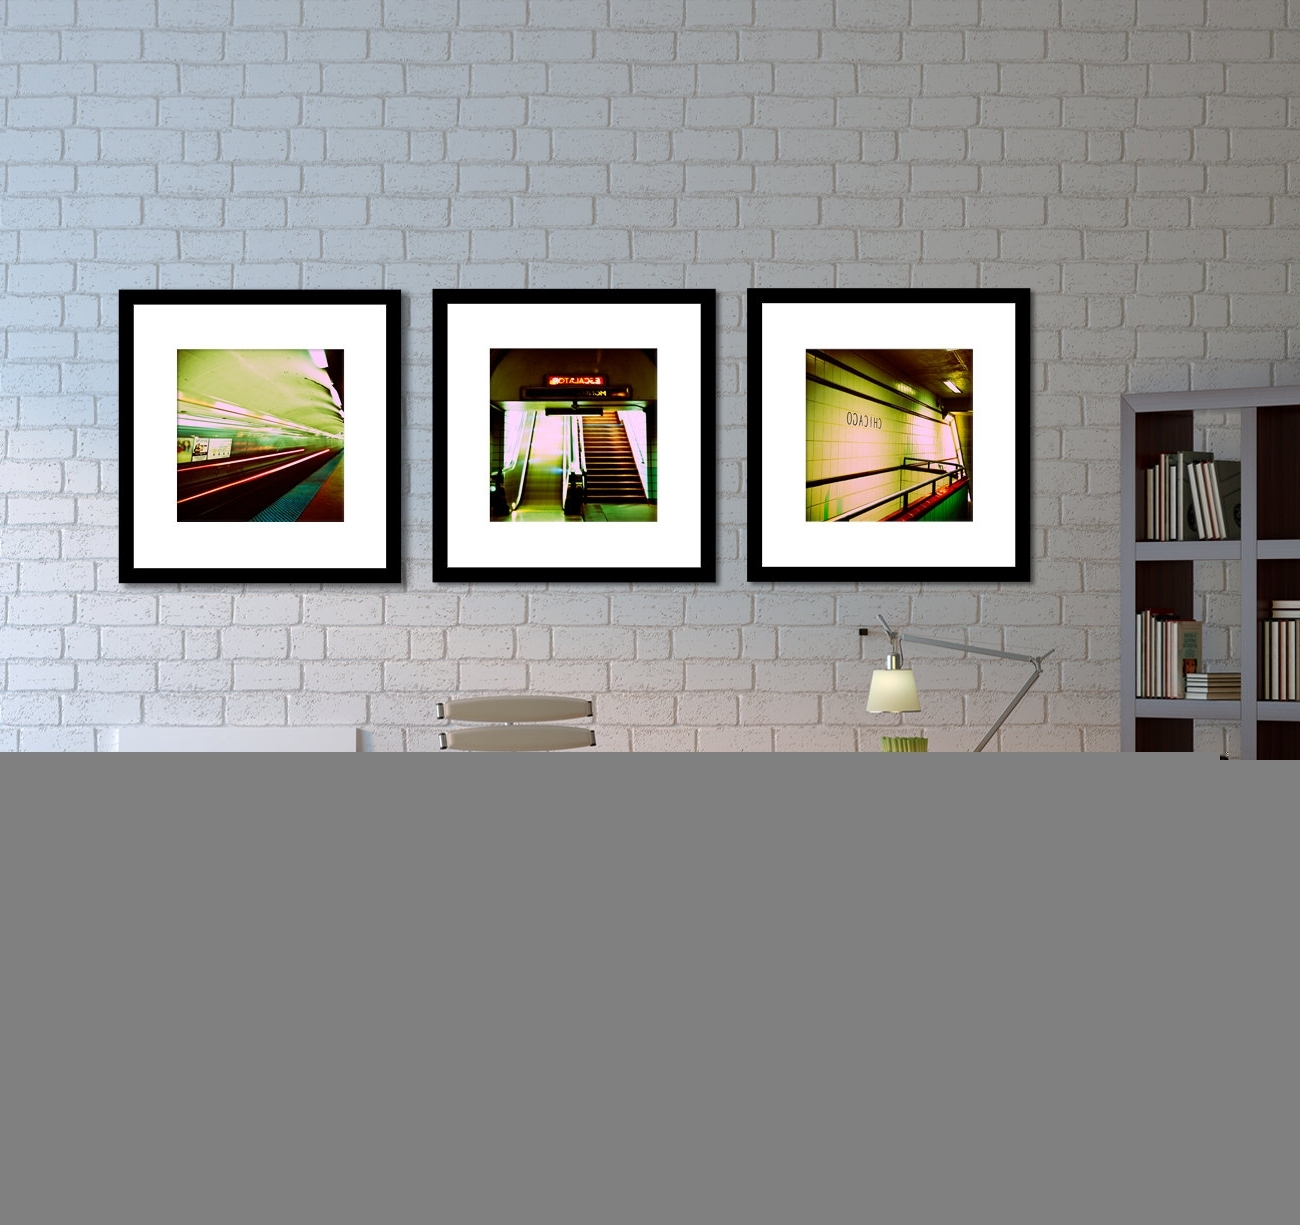 Abstract Office Wall Art Inside Most Recent Amazing Of Top Wall Decor For Office Aa For Office Decor # (View 3 of 15)